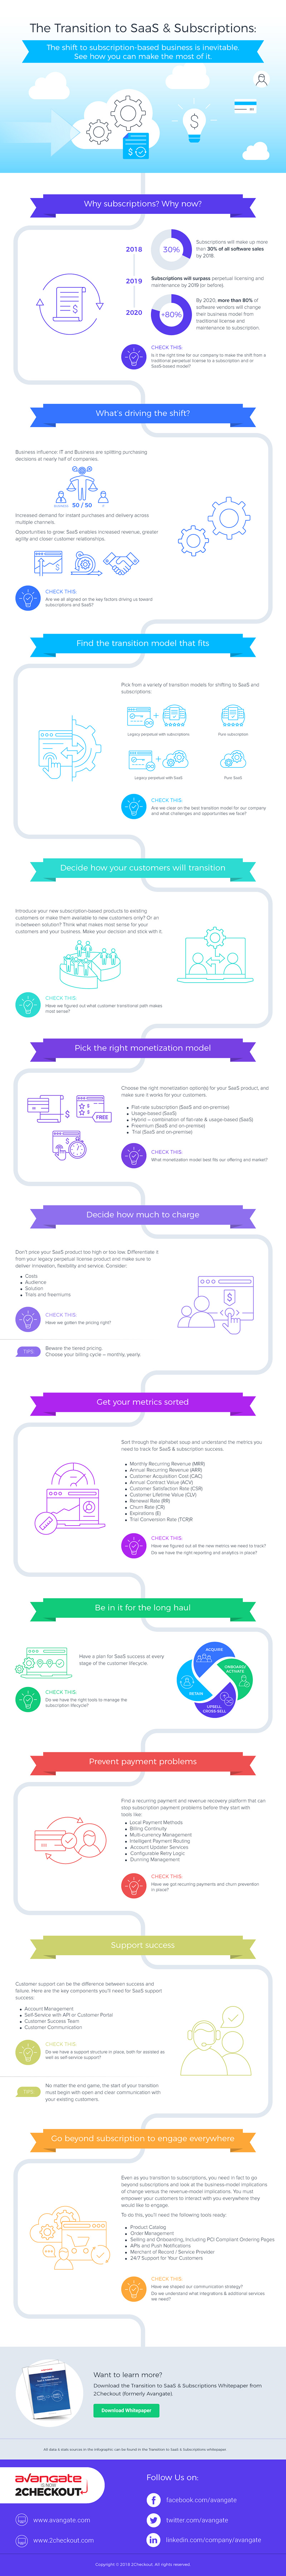 transition-to-saas-infographic